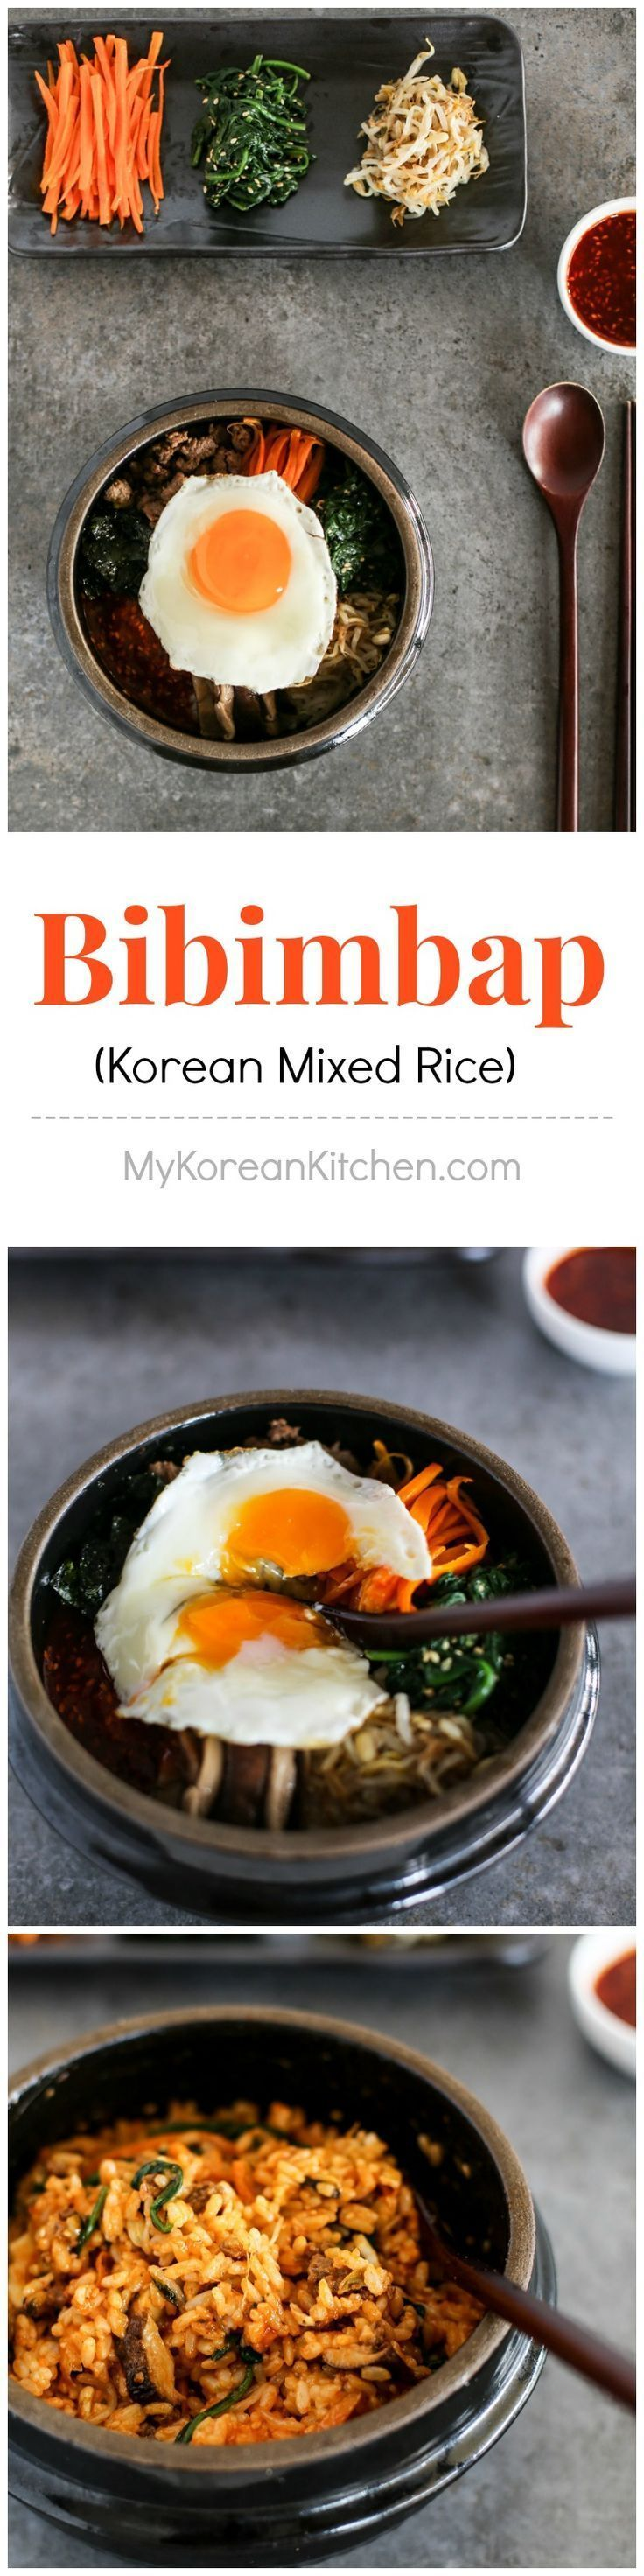 Addictively delicious Bibimbap recipe | MyKoreanKitchen.com